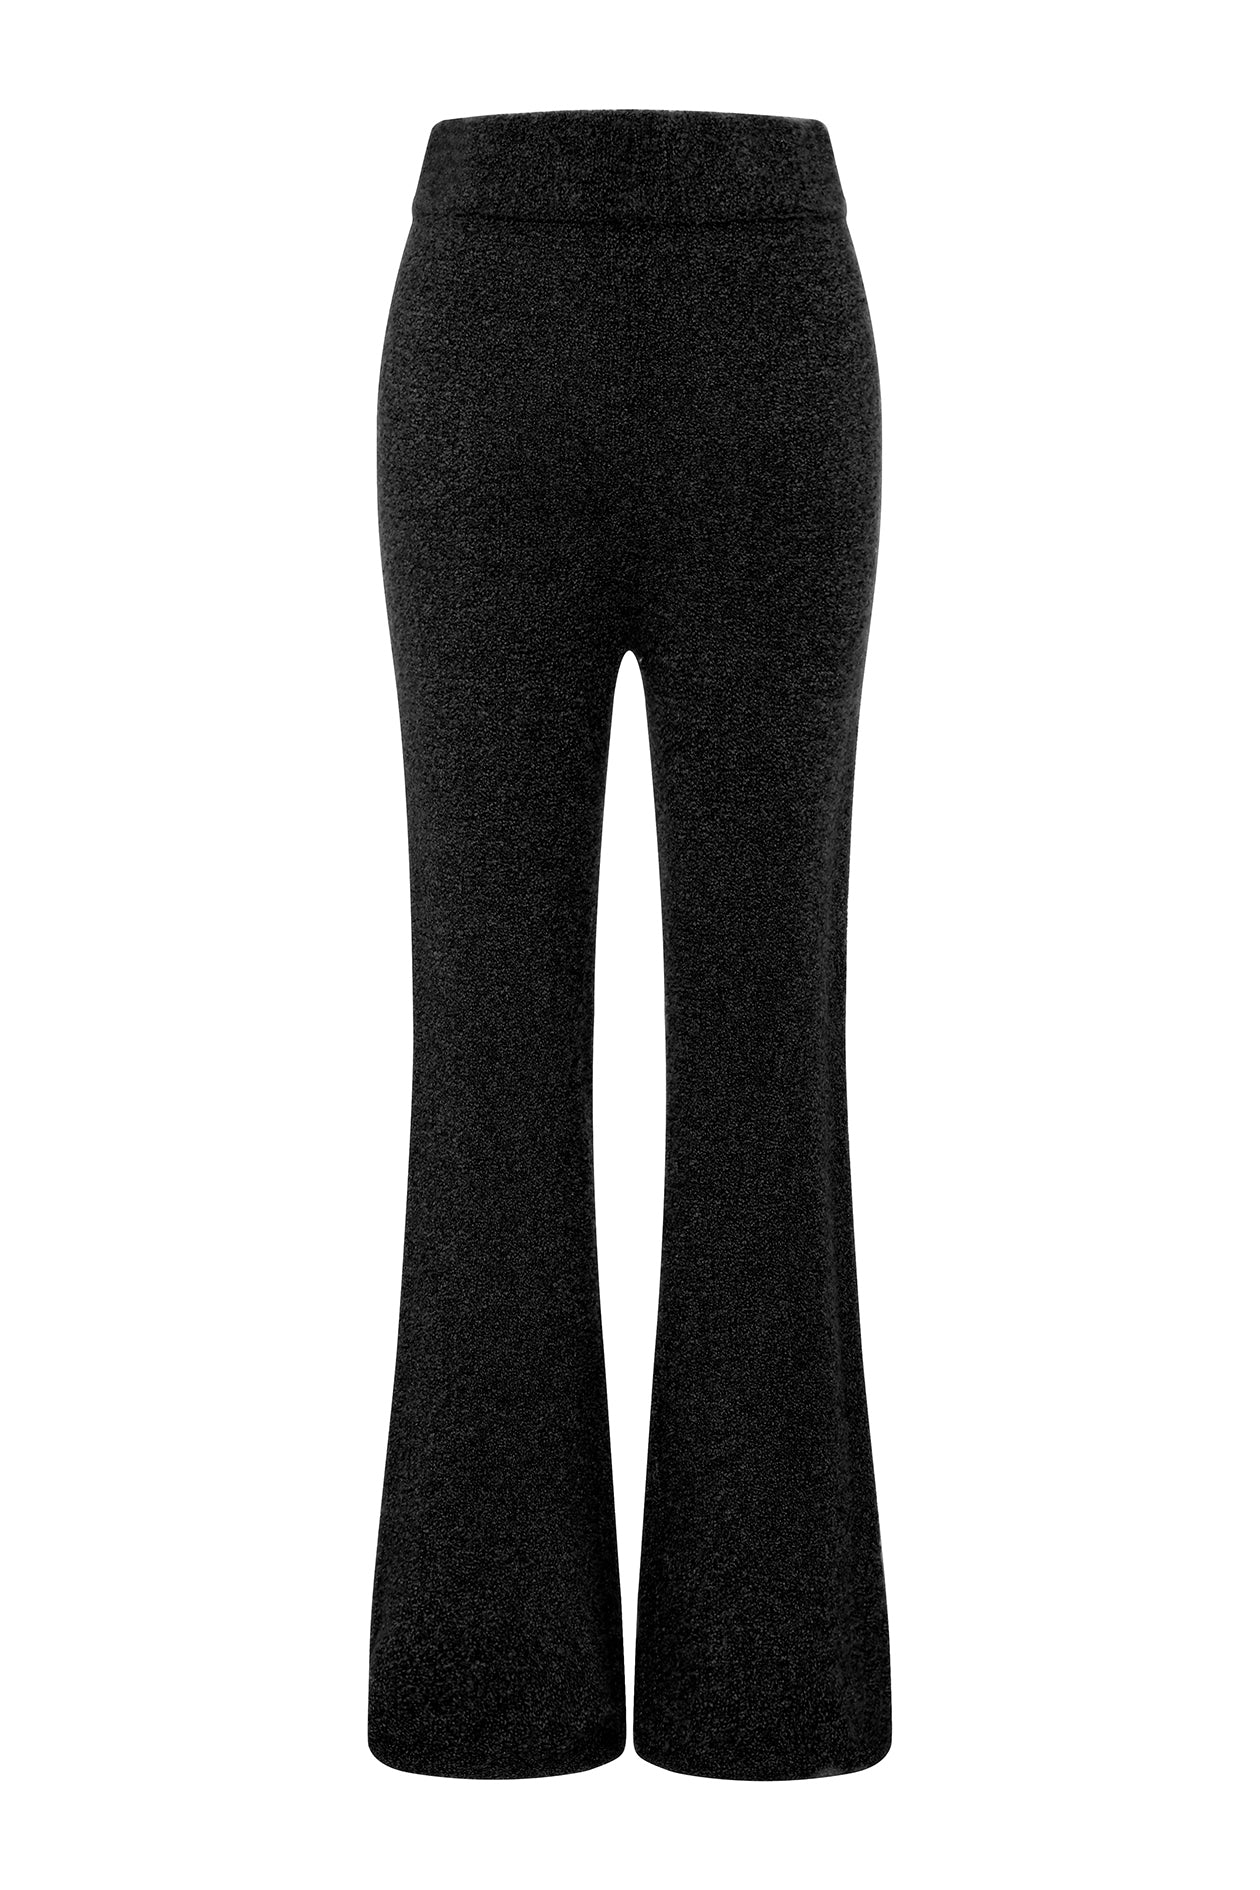 Selby Trouser Black